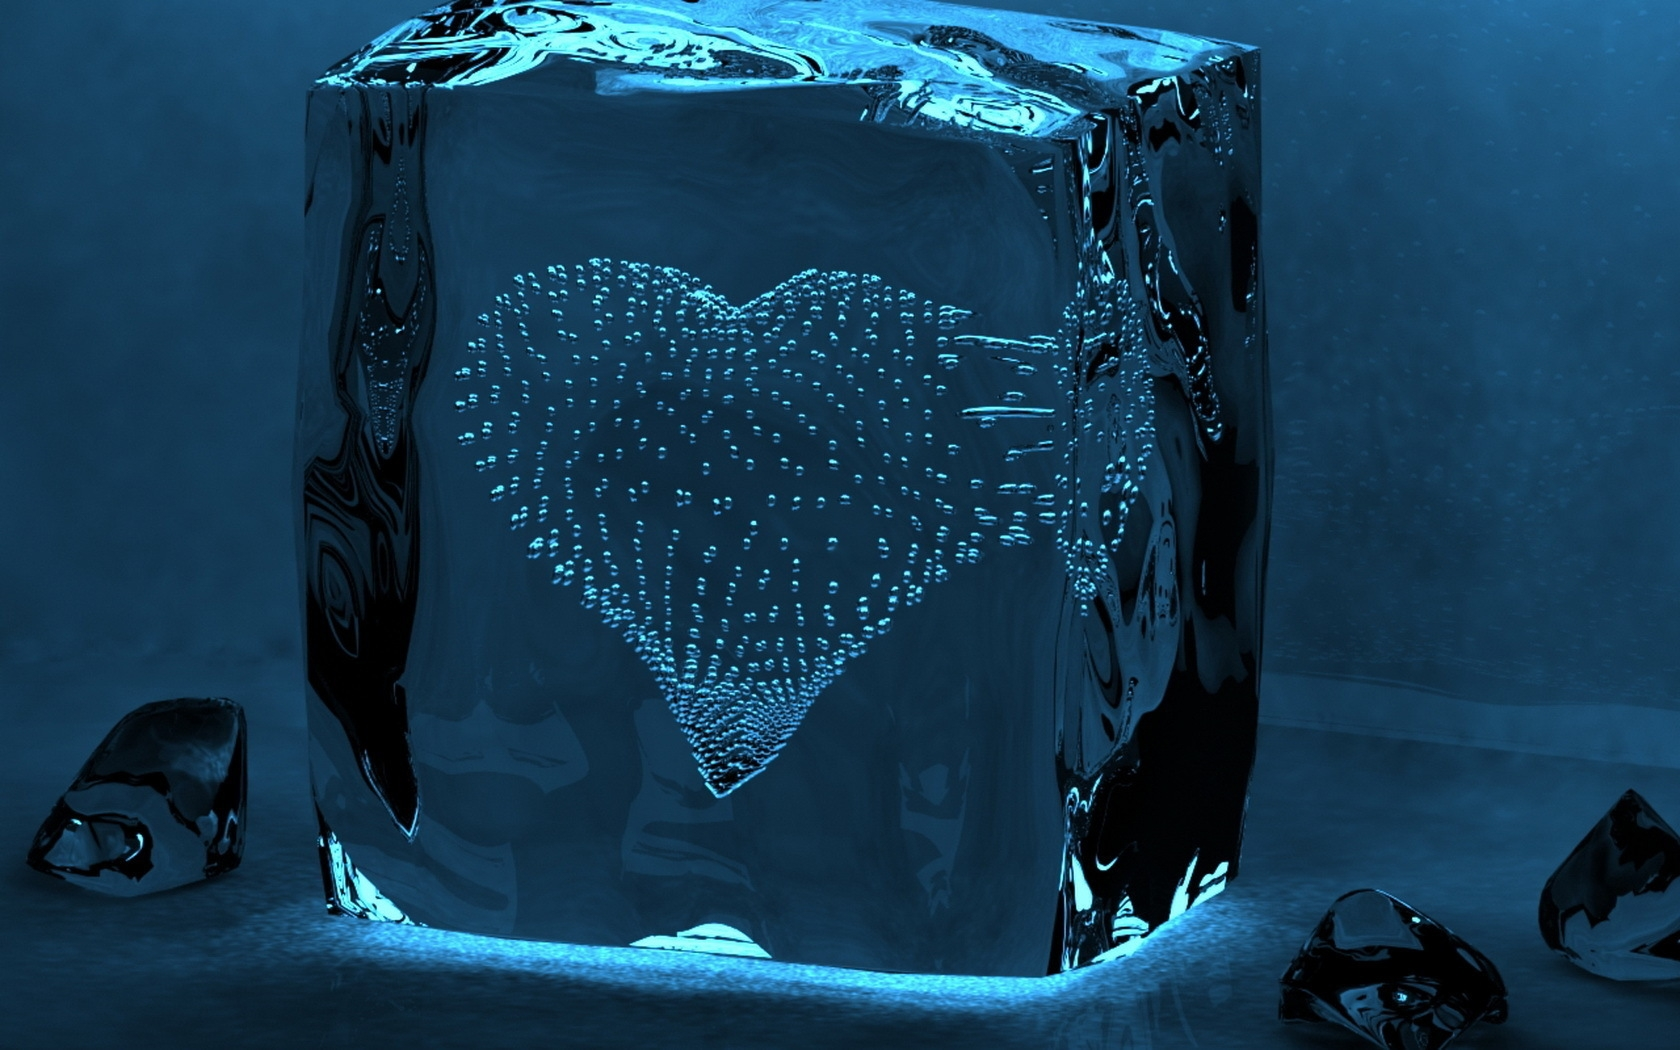 icy heart